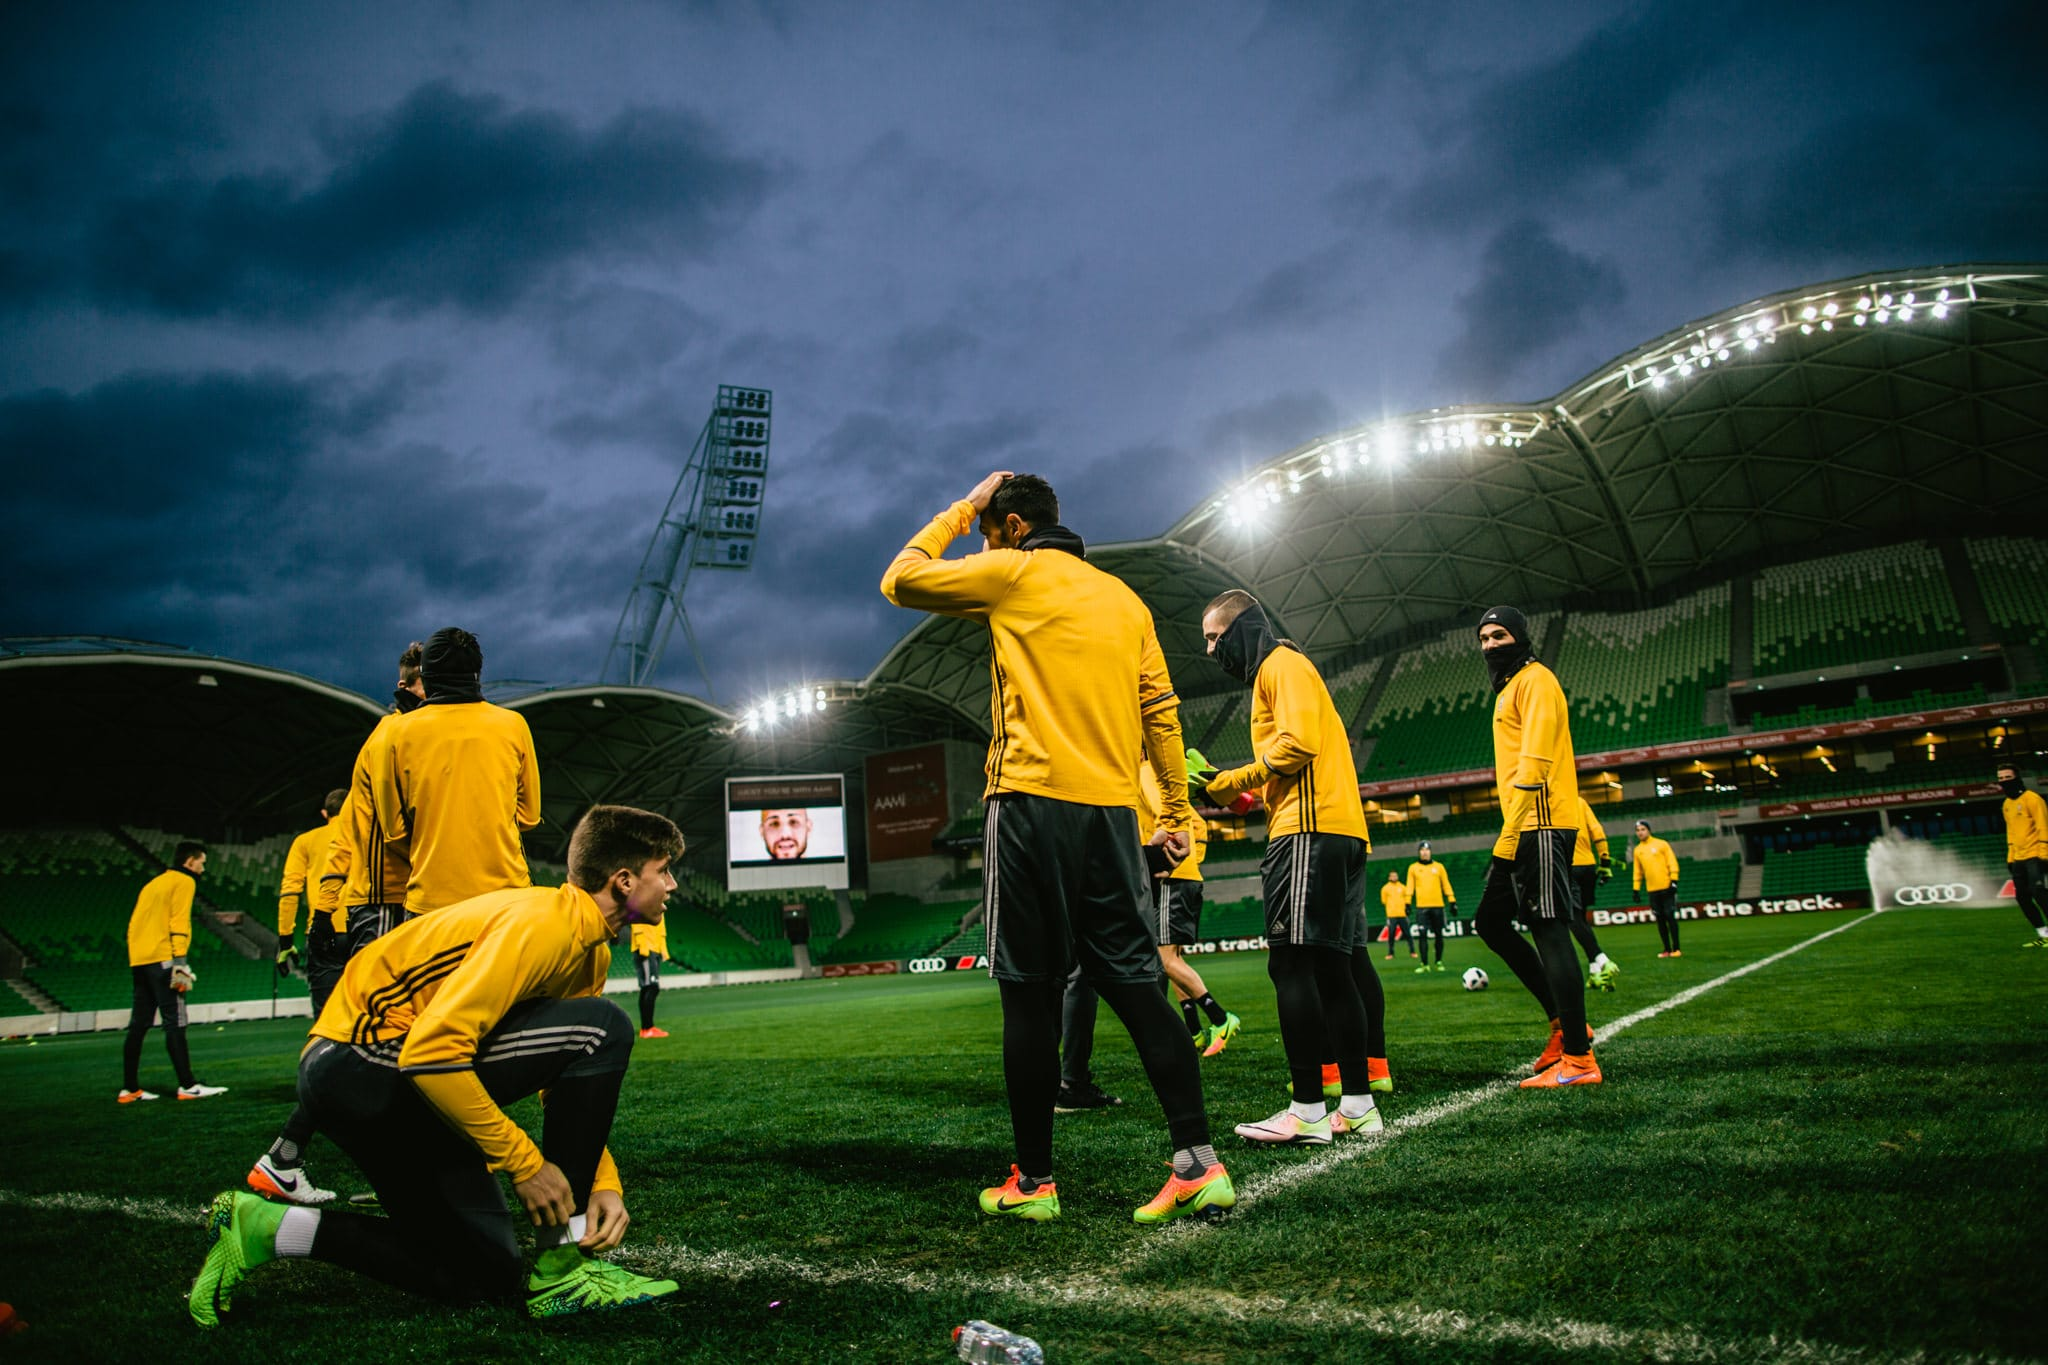 juventus warm up - aami park stadium event photography